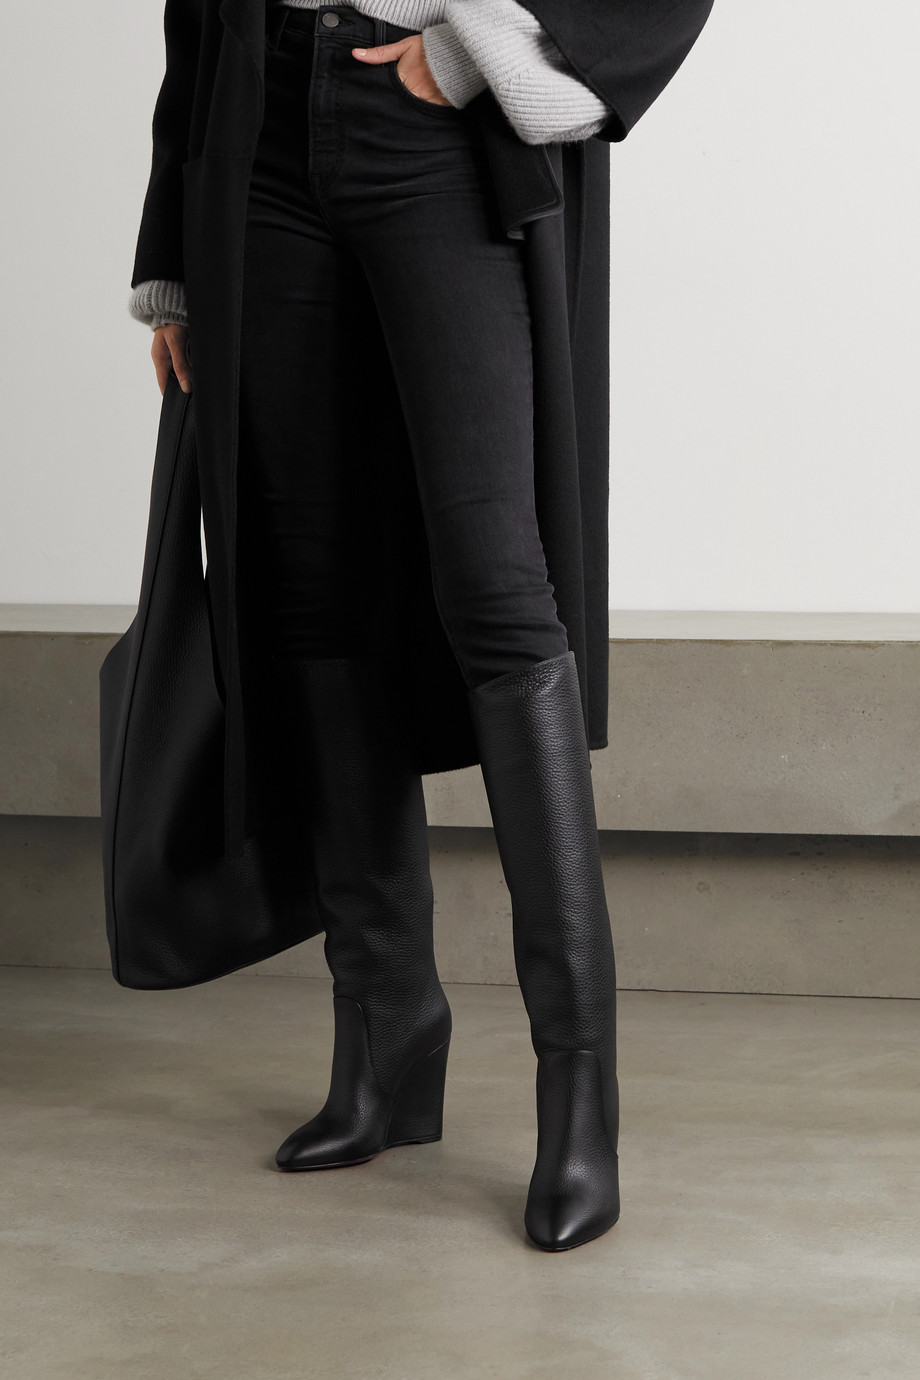 CHRISTIAN LOUBOUTIN Civiliza 100 textured-leather wedge knee boots